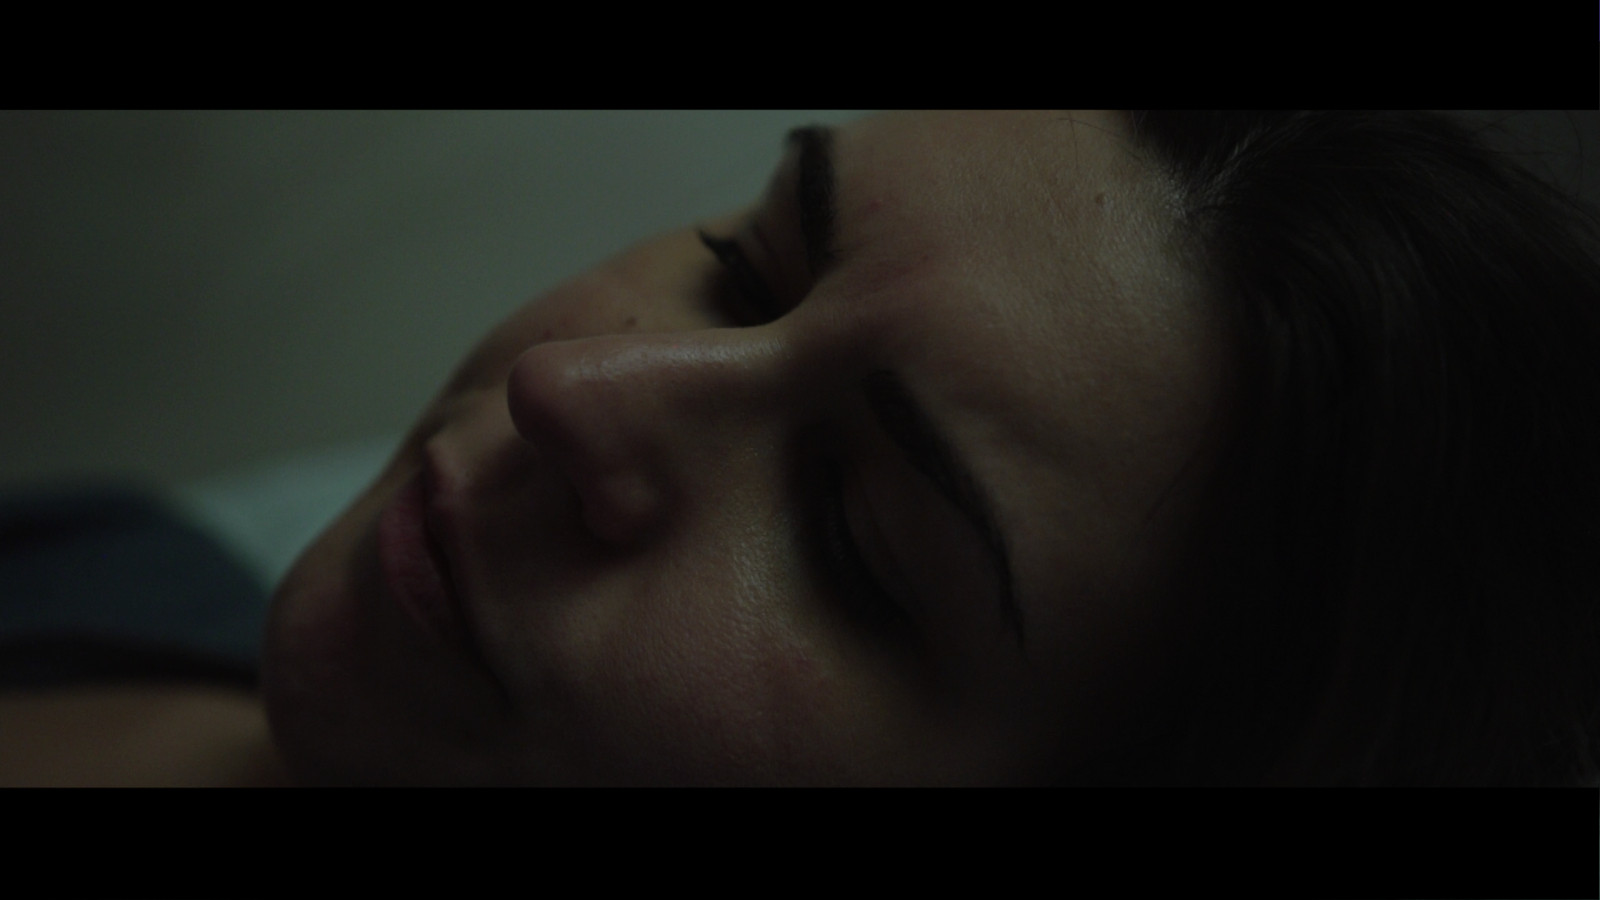 Still from Fresh Media Productions short film Trapped about domestic violence of actress Gaia Poli